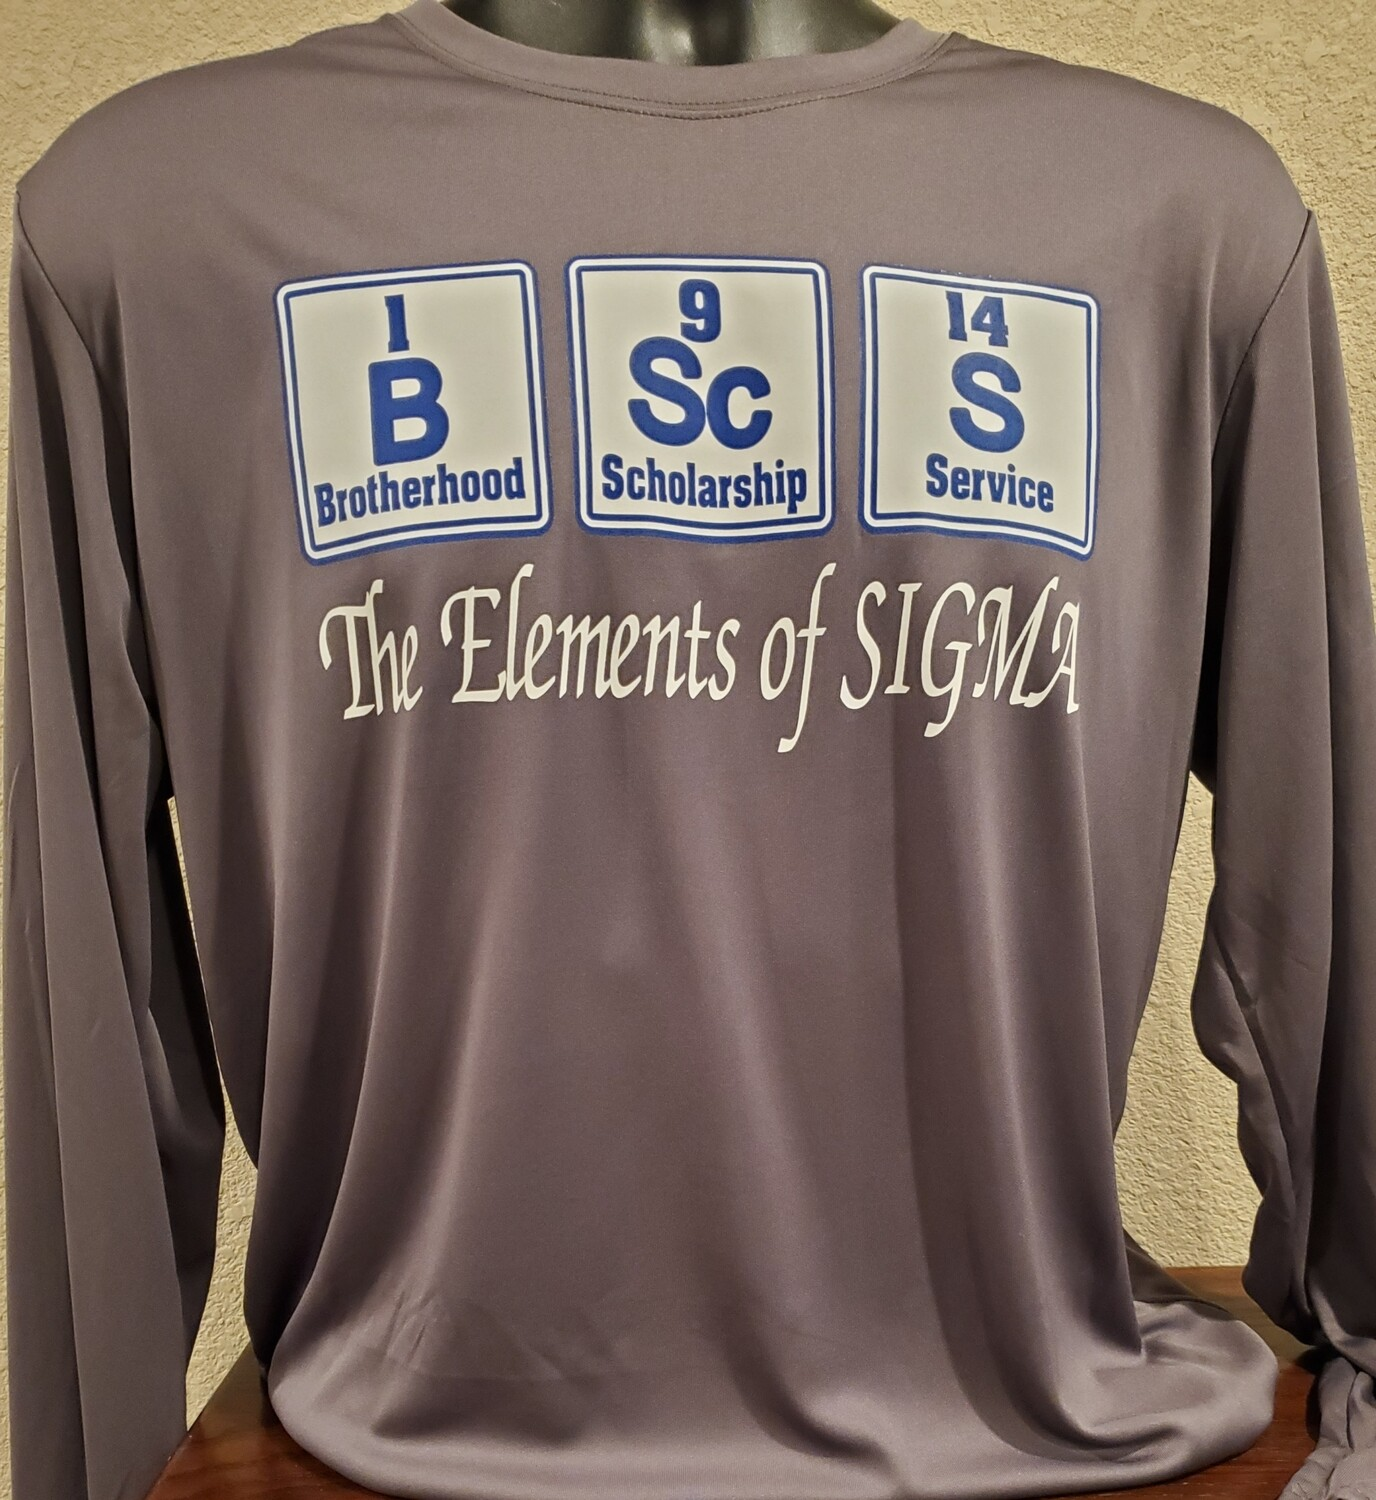 SALE****The Elements of Sigma (Dri-Fit) - Long Sleeve****SALE